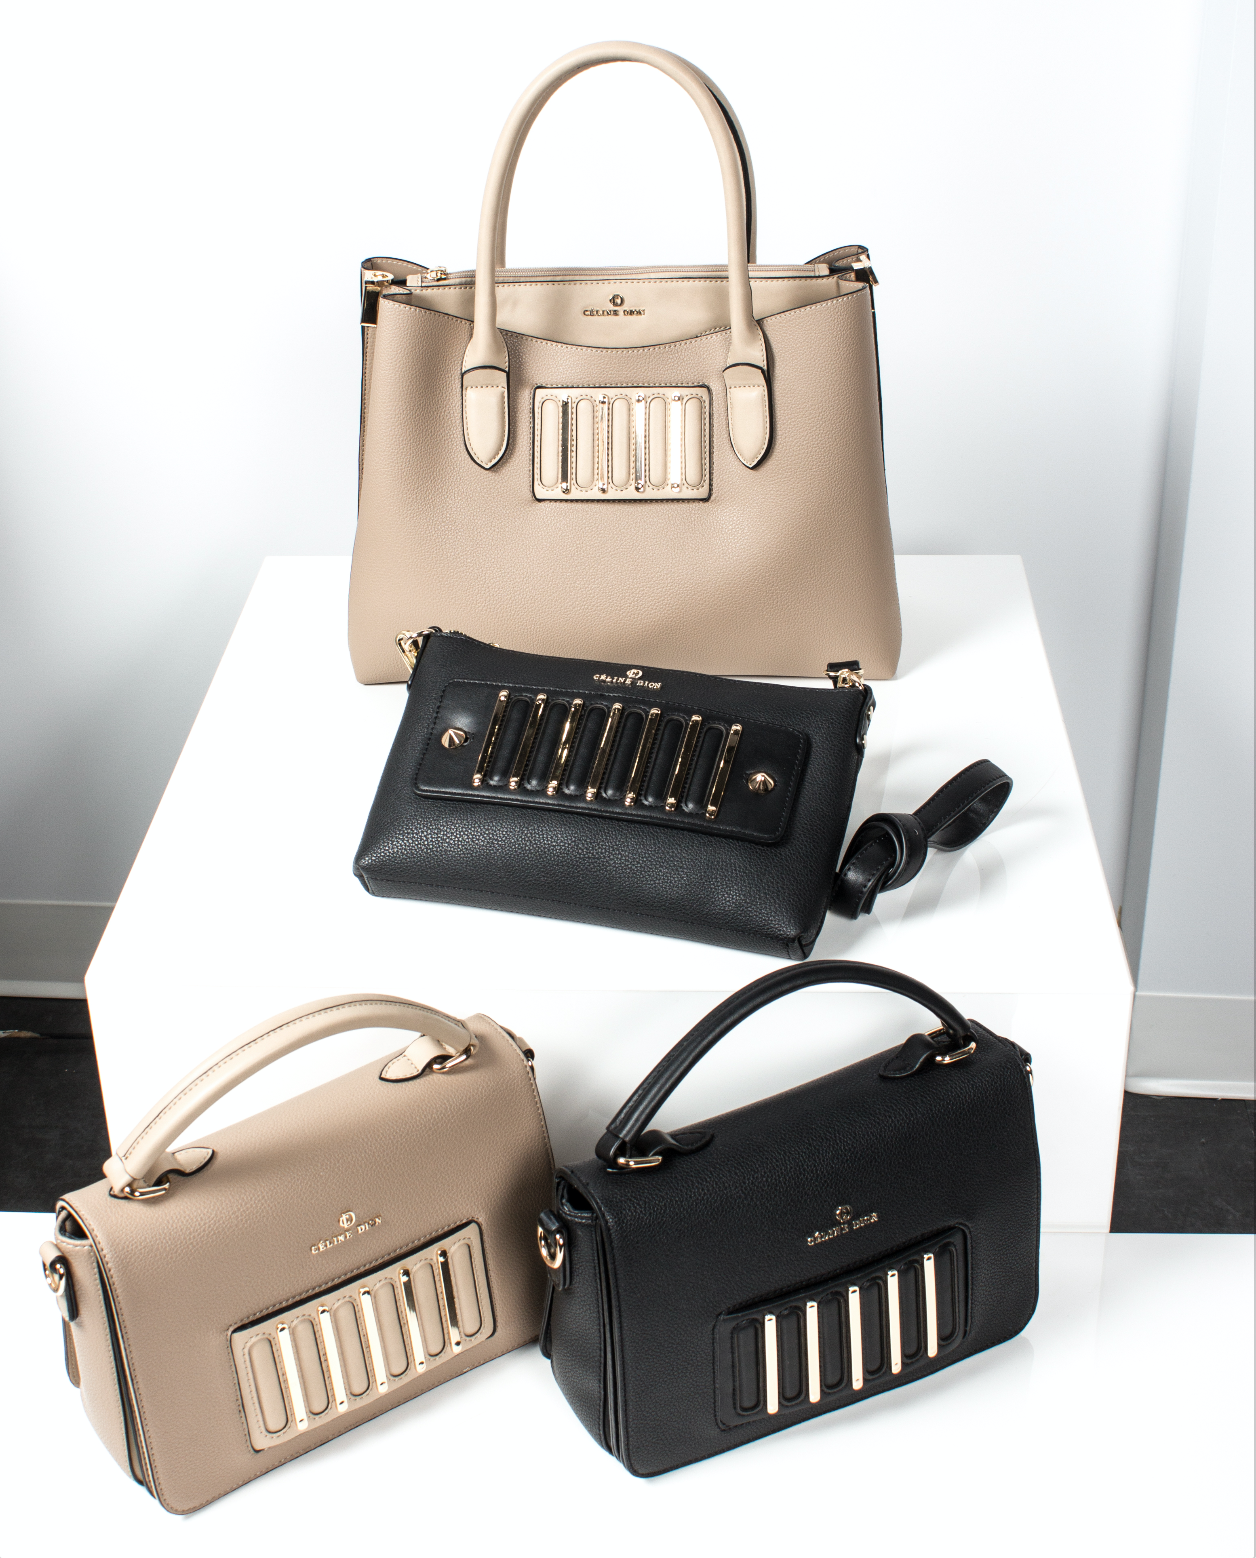 86d6f6e4f4 INTERVAL - HANDLE BAG By Céline Dion   Handle bag with flap Front metal  vertical bar